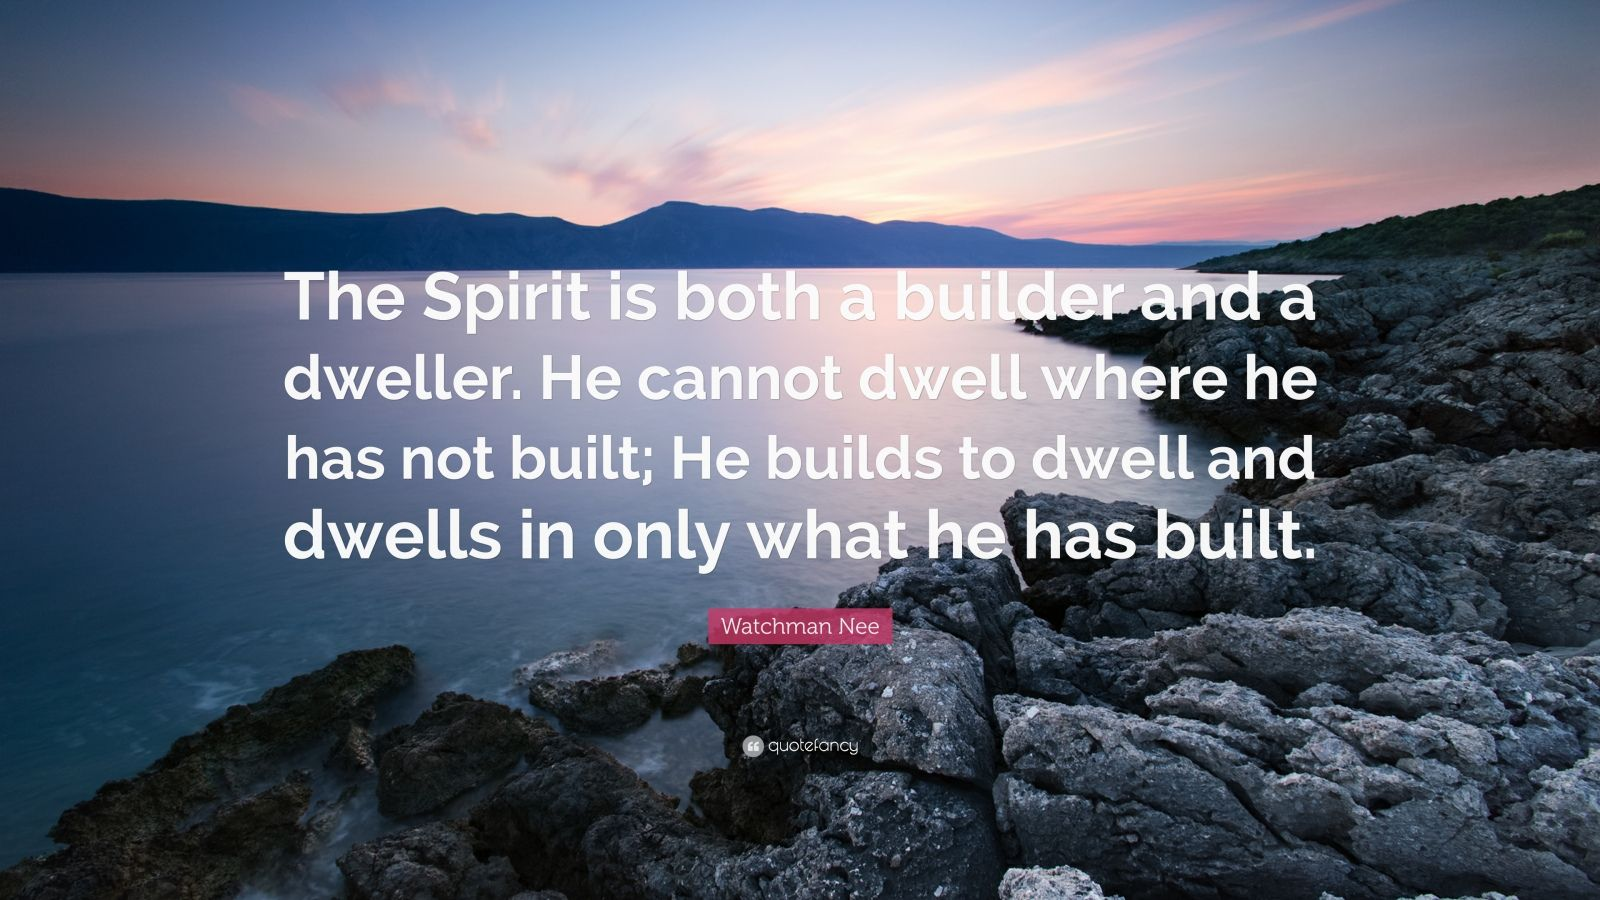 """Watchman Nee Quote: """"The Spirit is both a builder and a dweller. He cannot dwell where he has not built; He builds to dwell and dwells in only what he has built."""""""